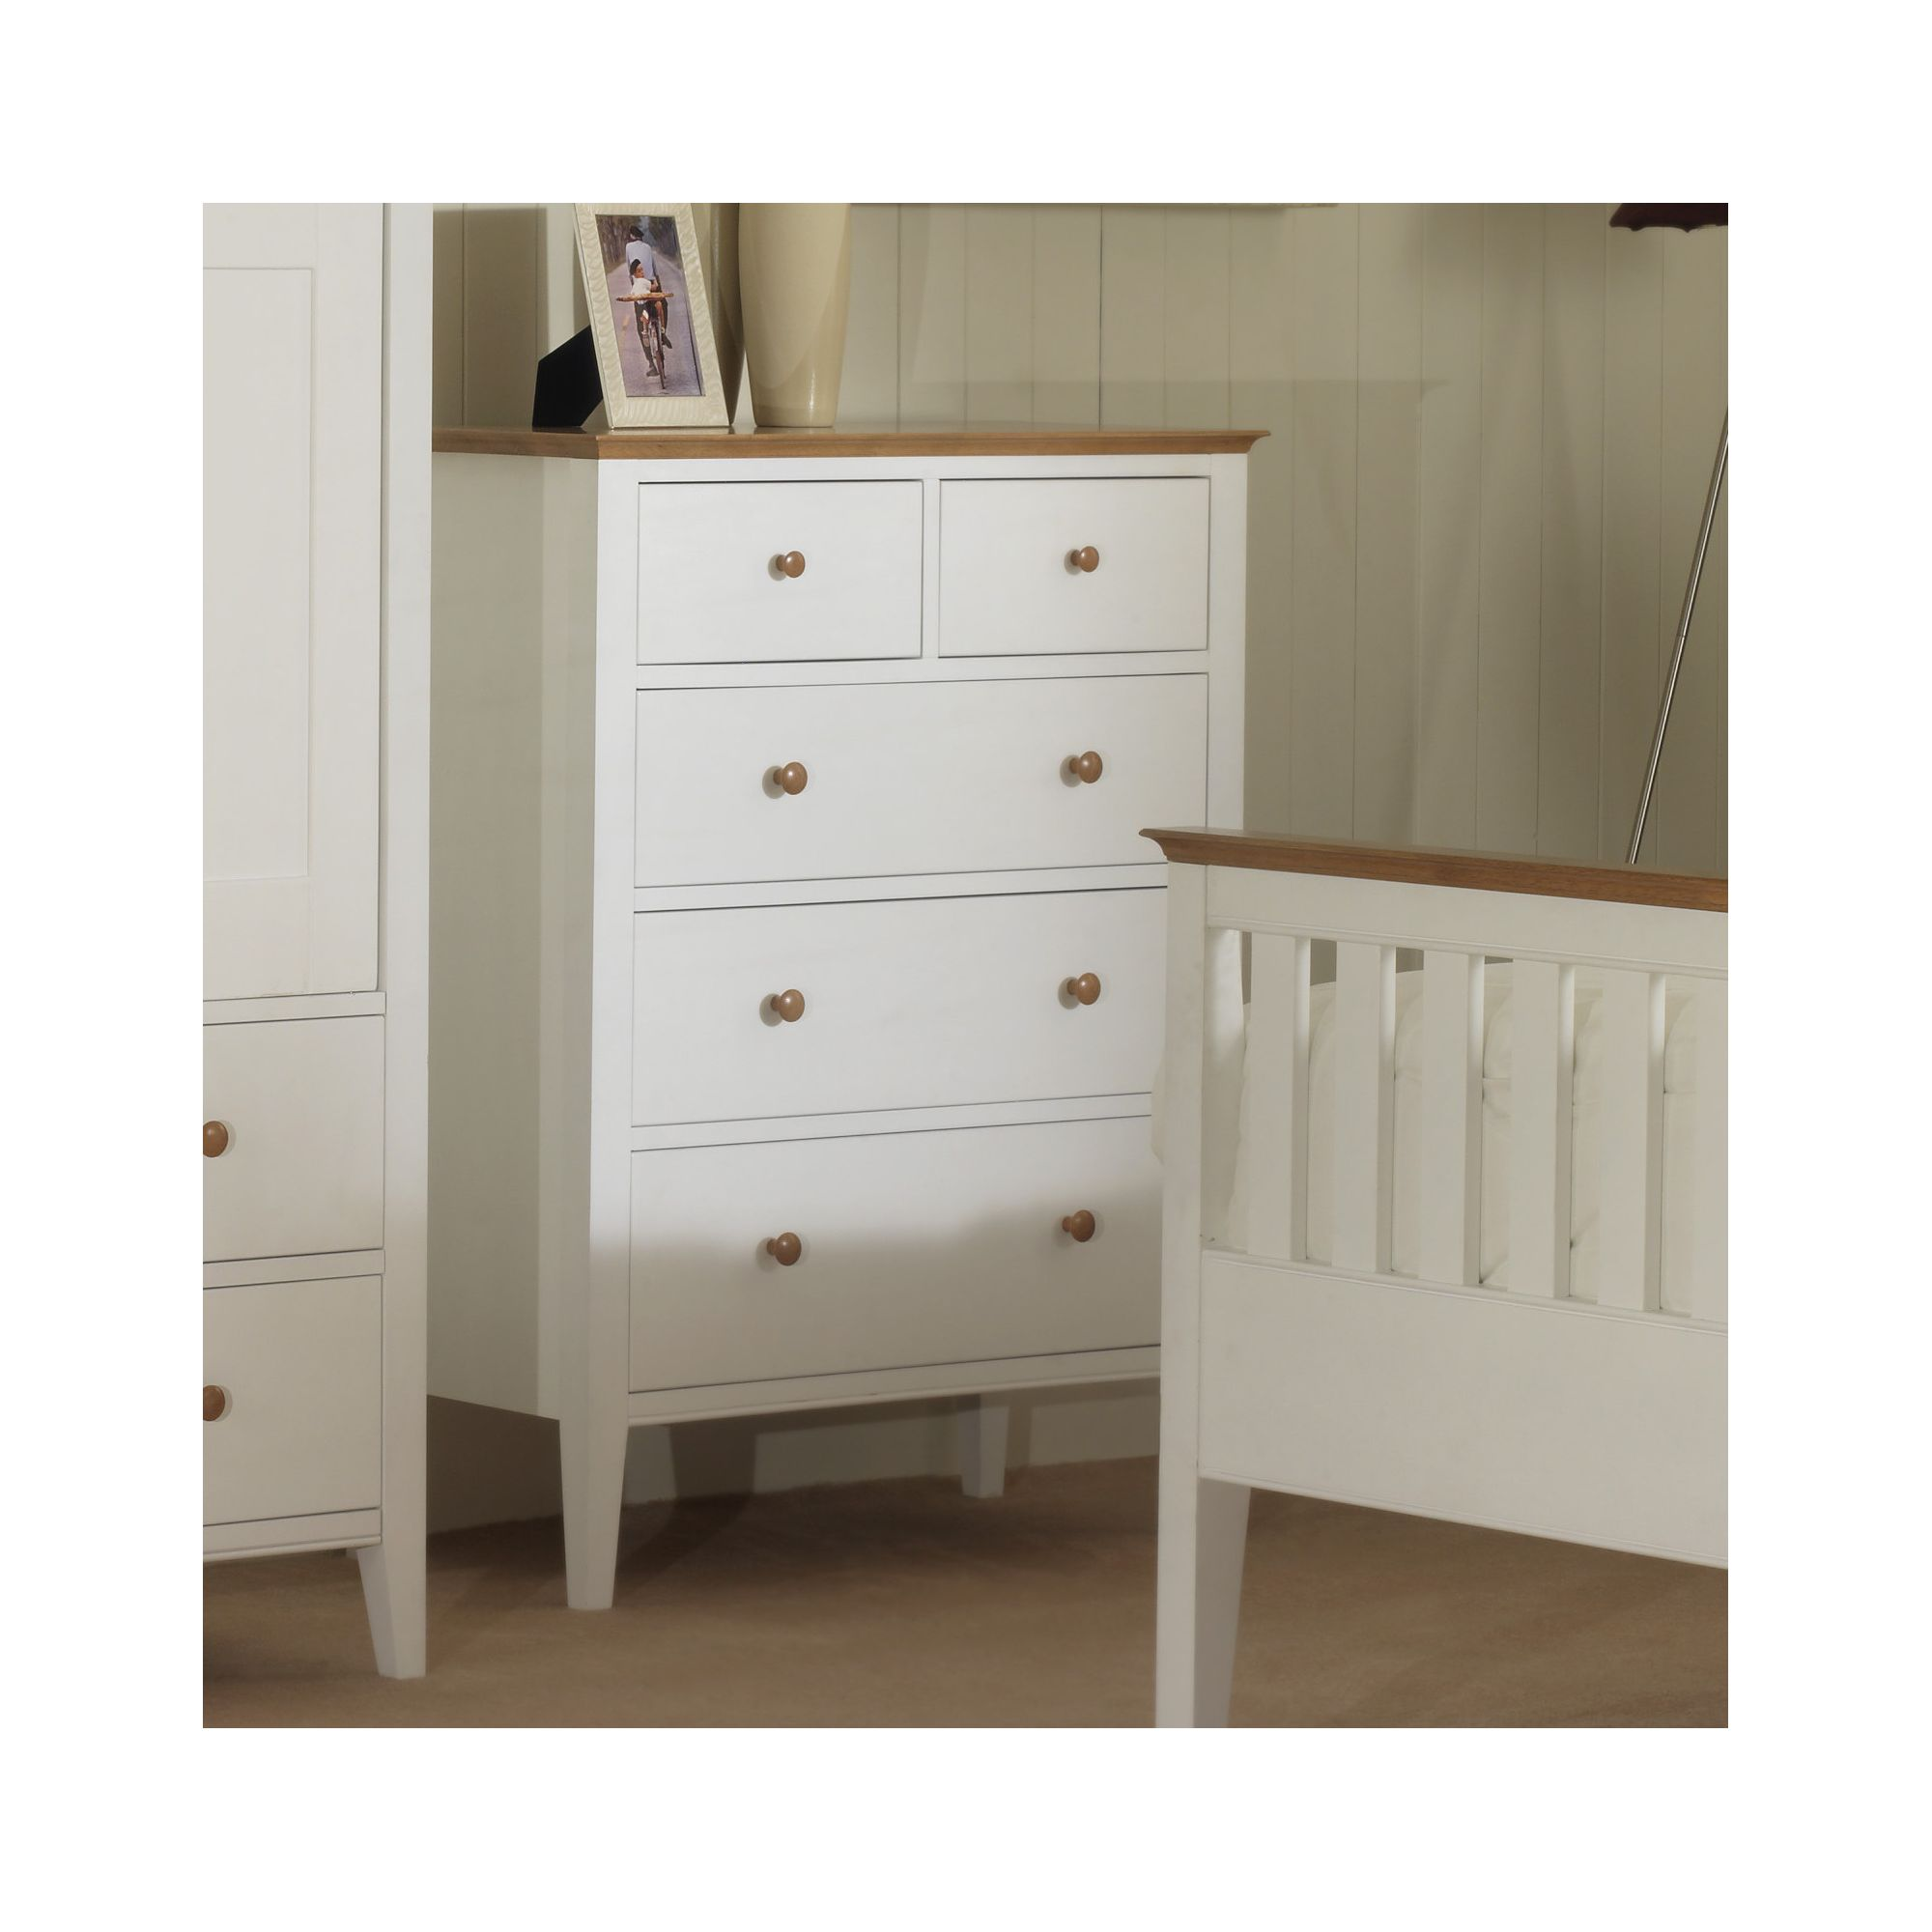 Serene Furnishings Grace 5 Drawer Chest - Golden Cherry with Opal White at Tesco Direct